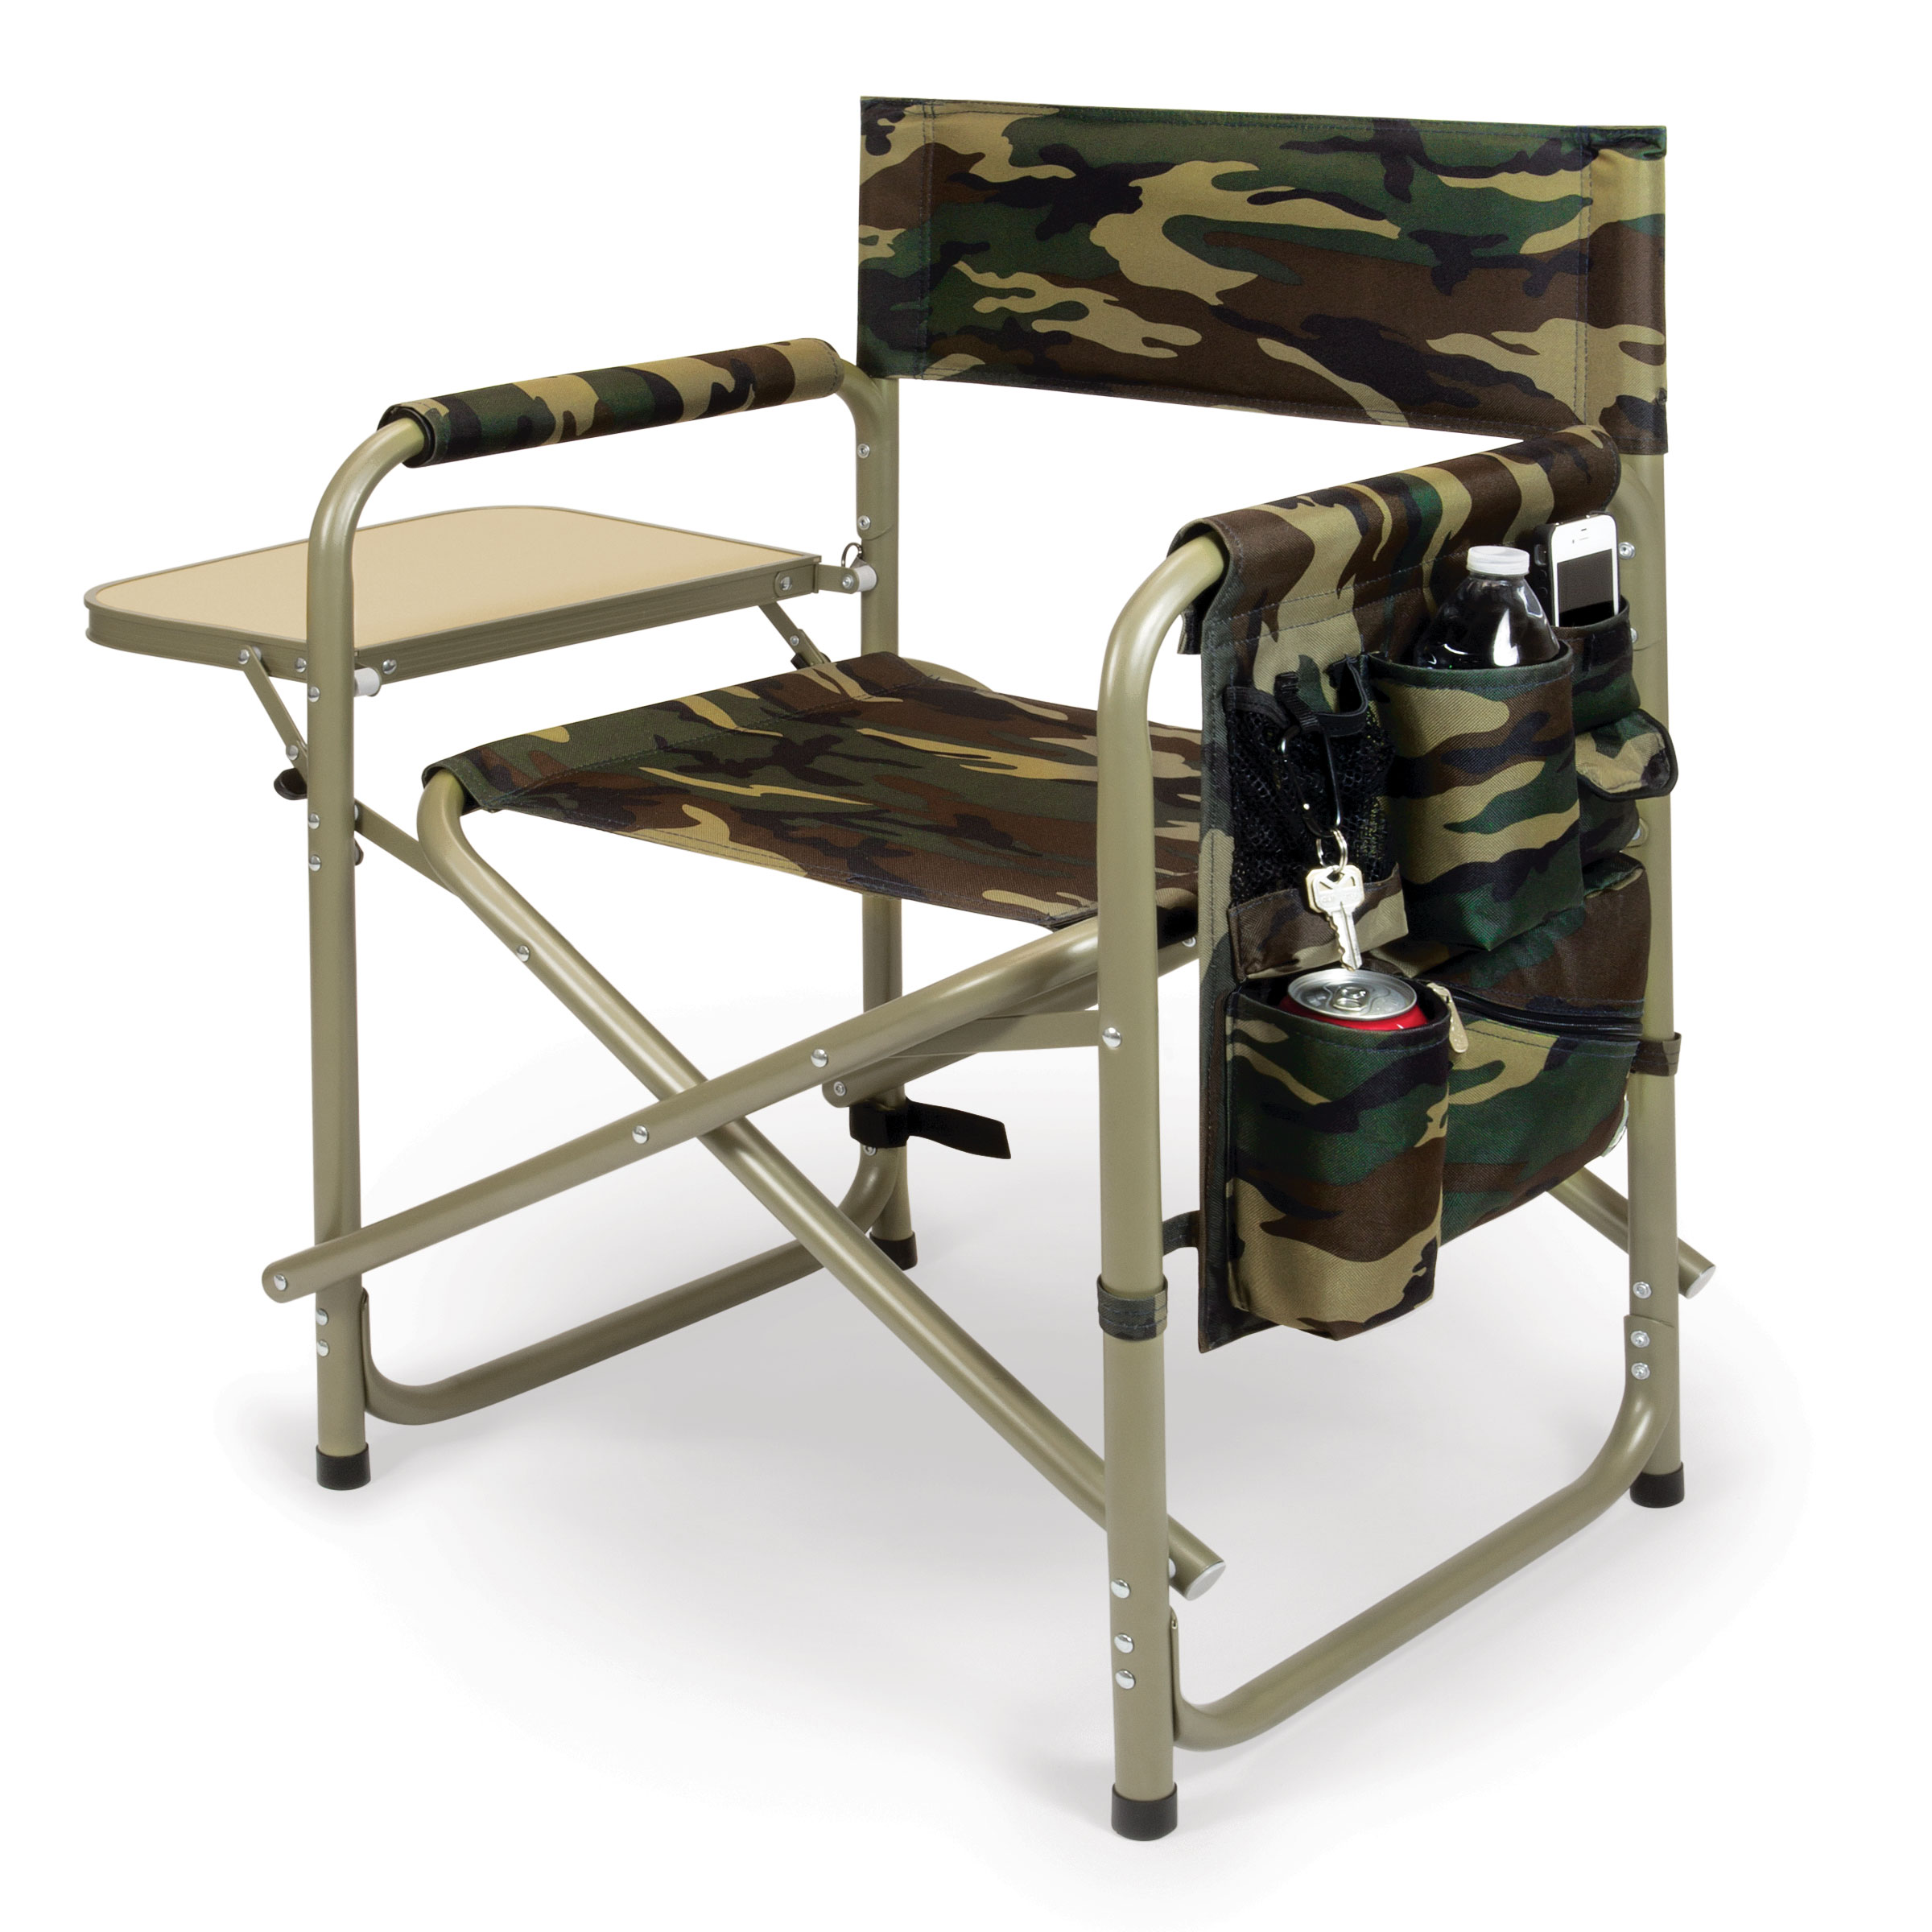 sport folding chairs fabric to cover dining camo sports chair gjm enterprises home shooting